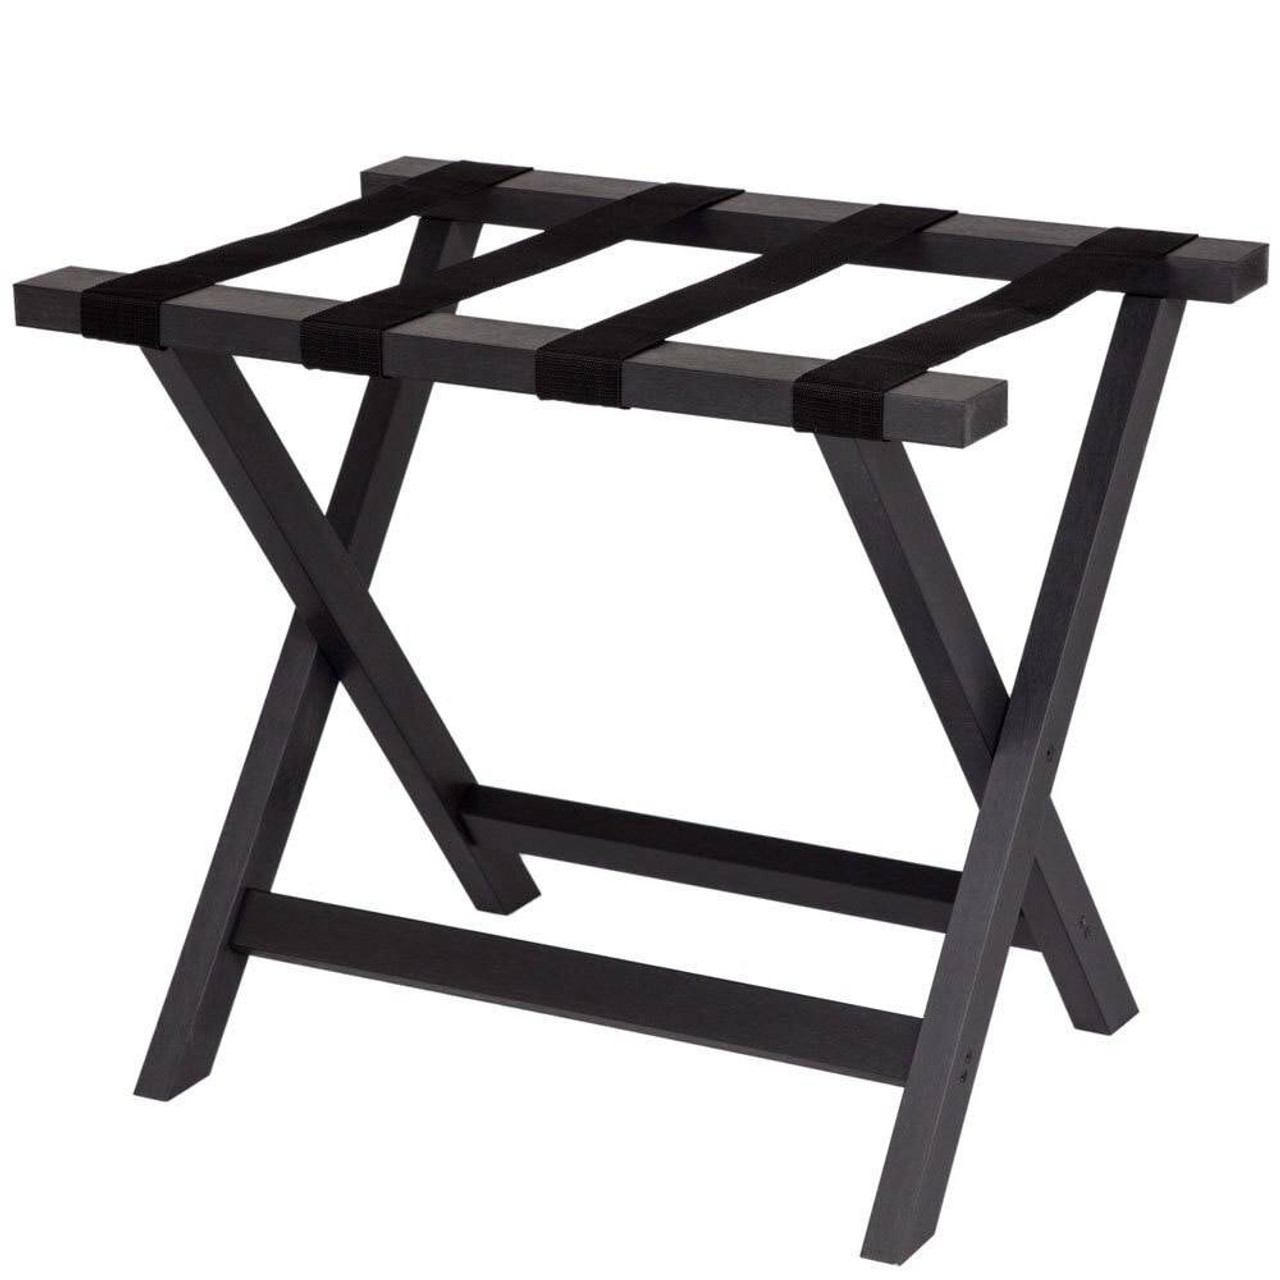 HOSPITALITY 1 SOURCE HOSPITALITY 1 SOURCE or COMPOSITE LUGGAGE RACK or BLACK STRAPS or BLACK FINISH or 2 PER CASE